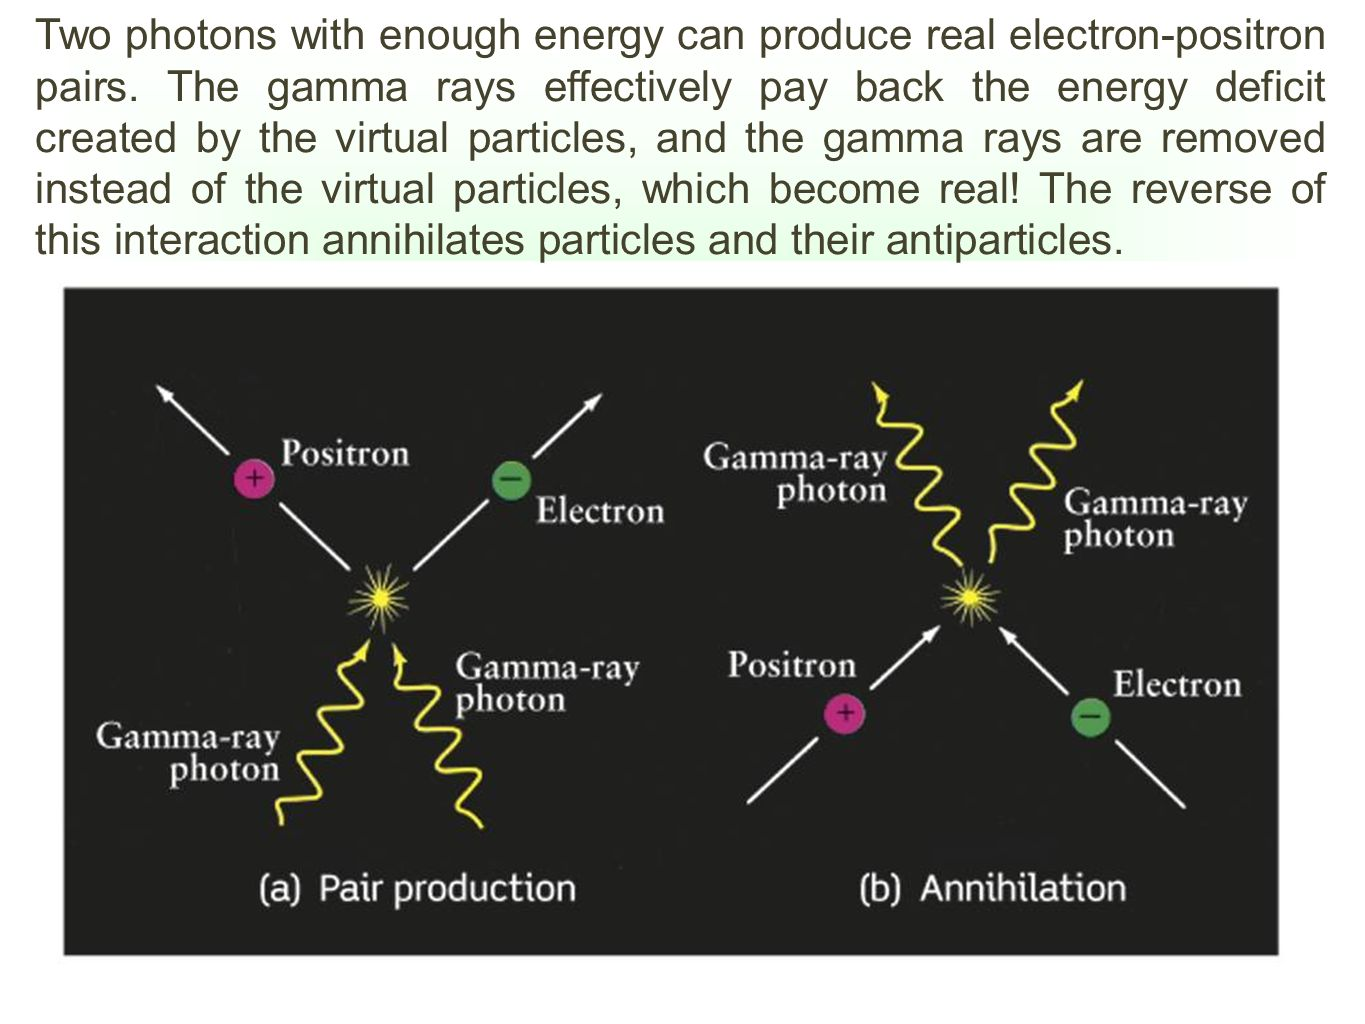 Two photons with enough energy can produce real electron-positron pairs.